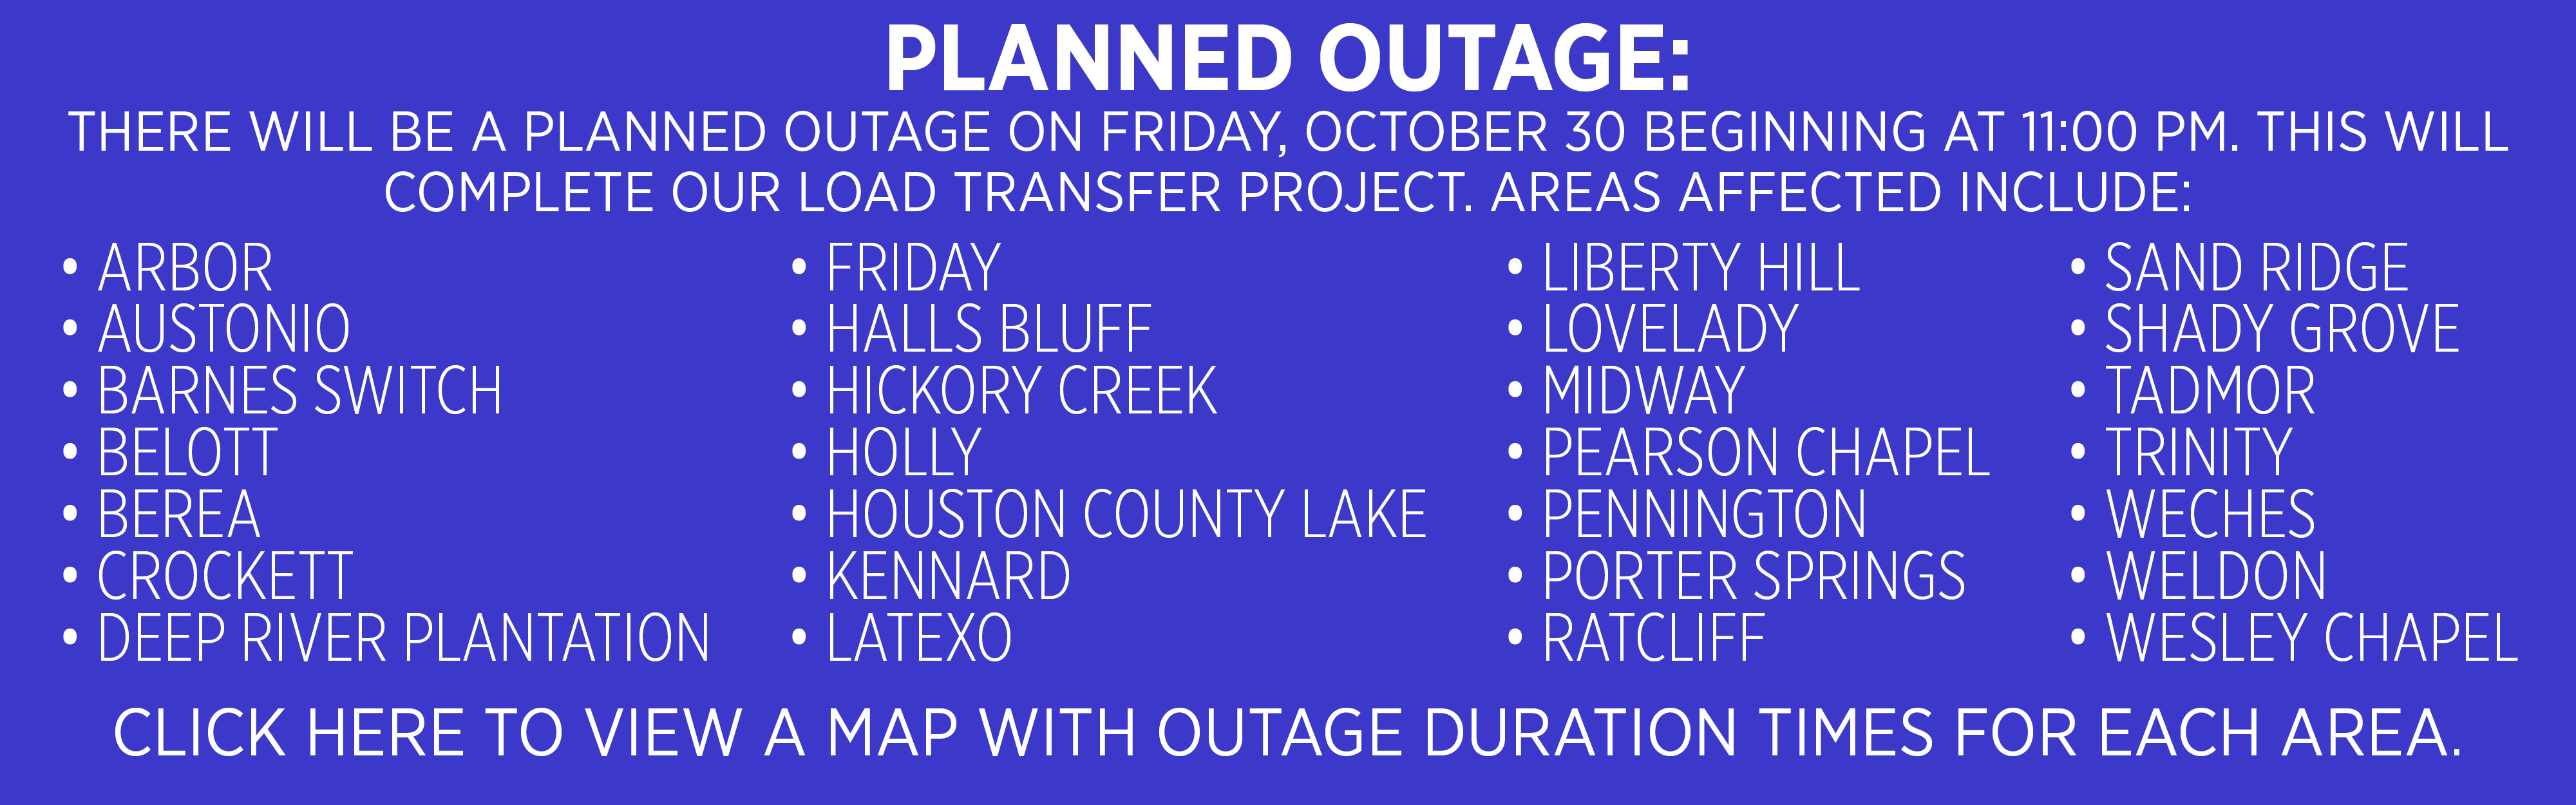 PLANNED OUTAGE INFORMATION